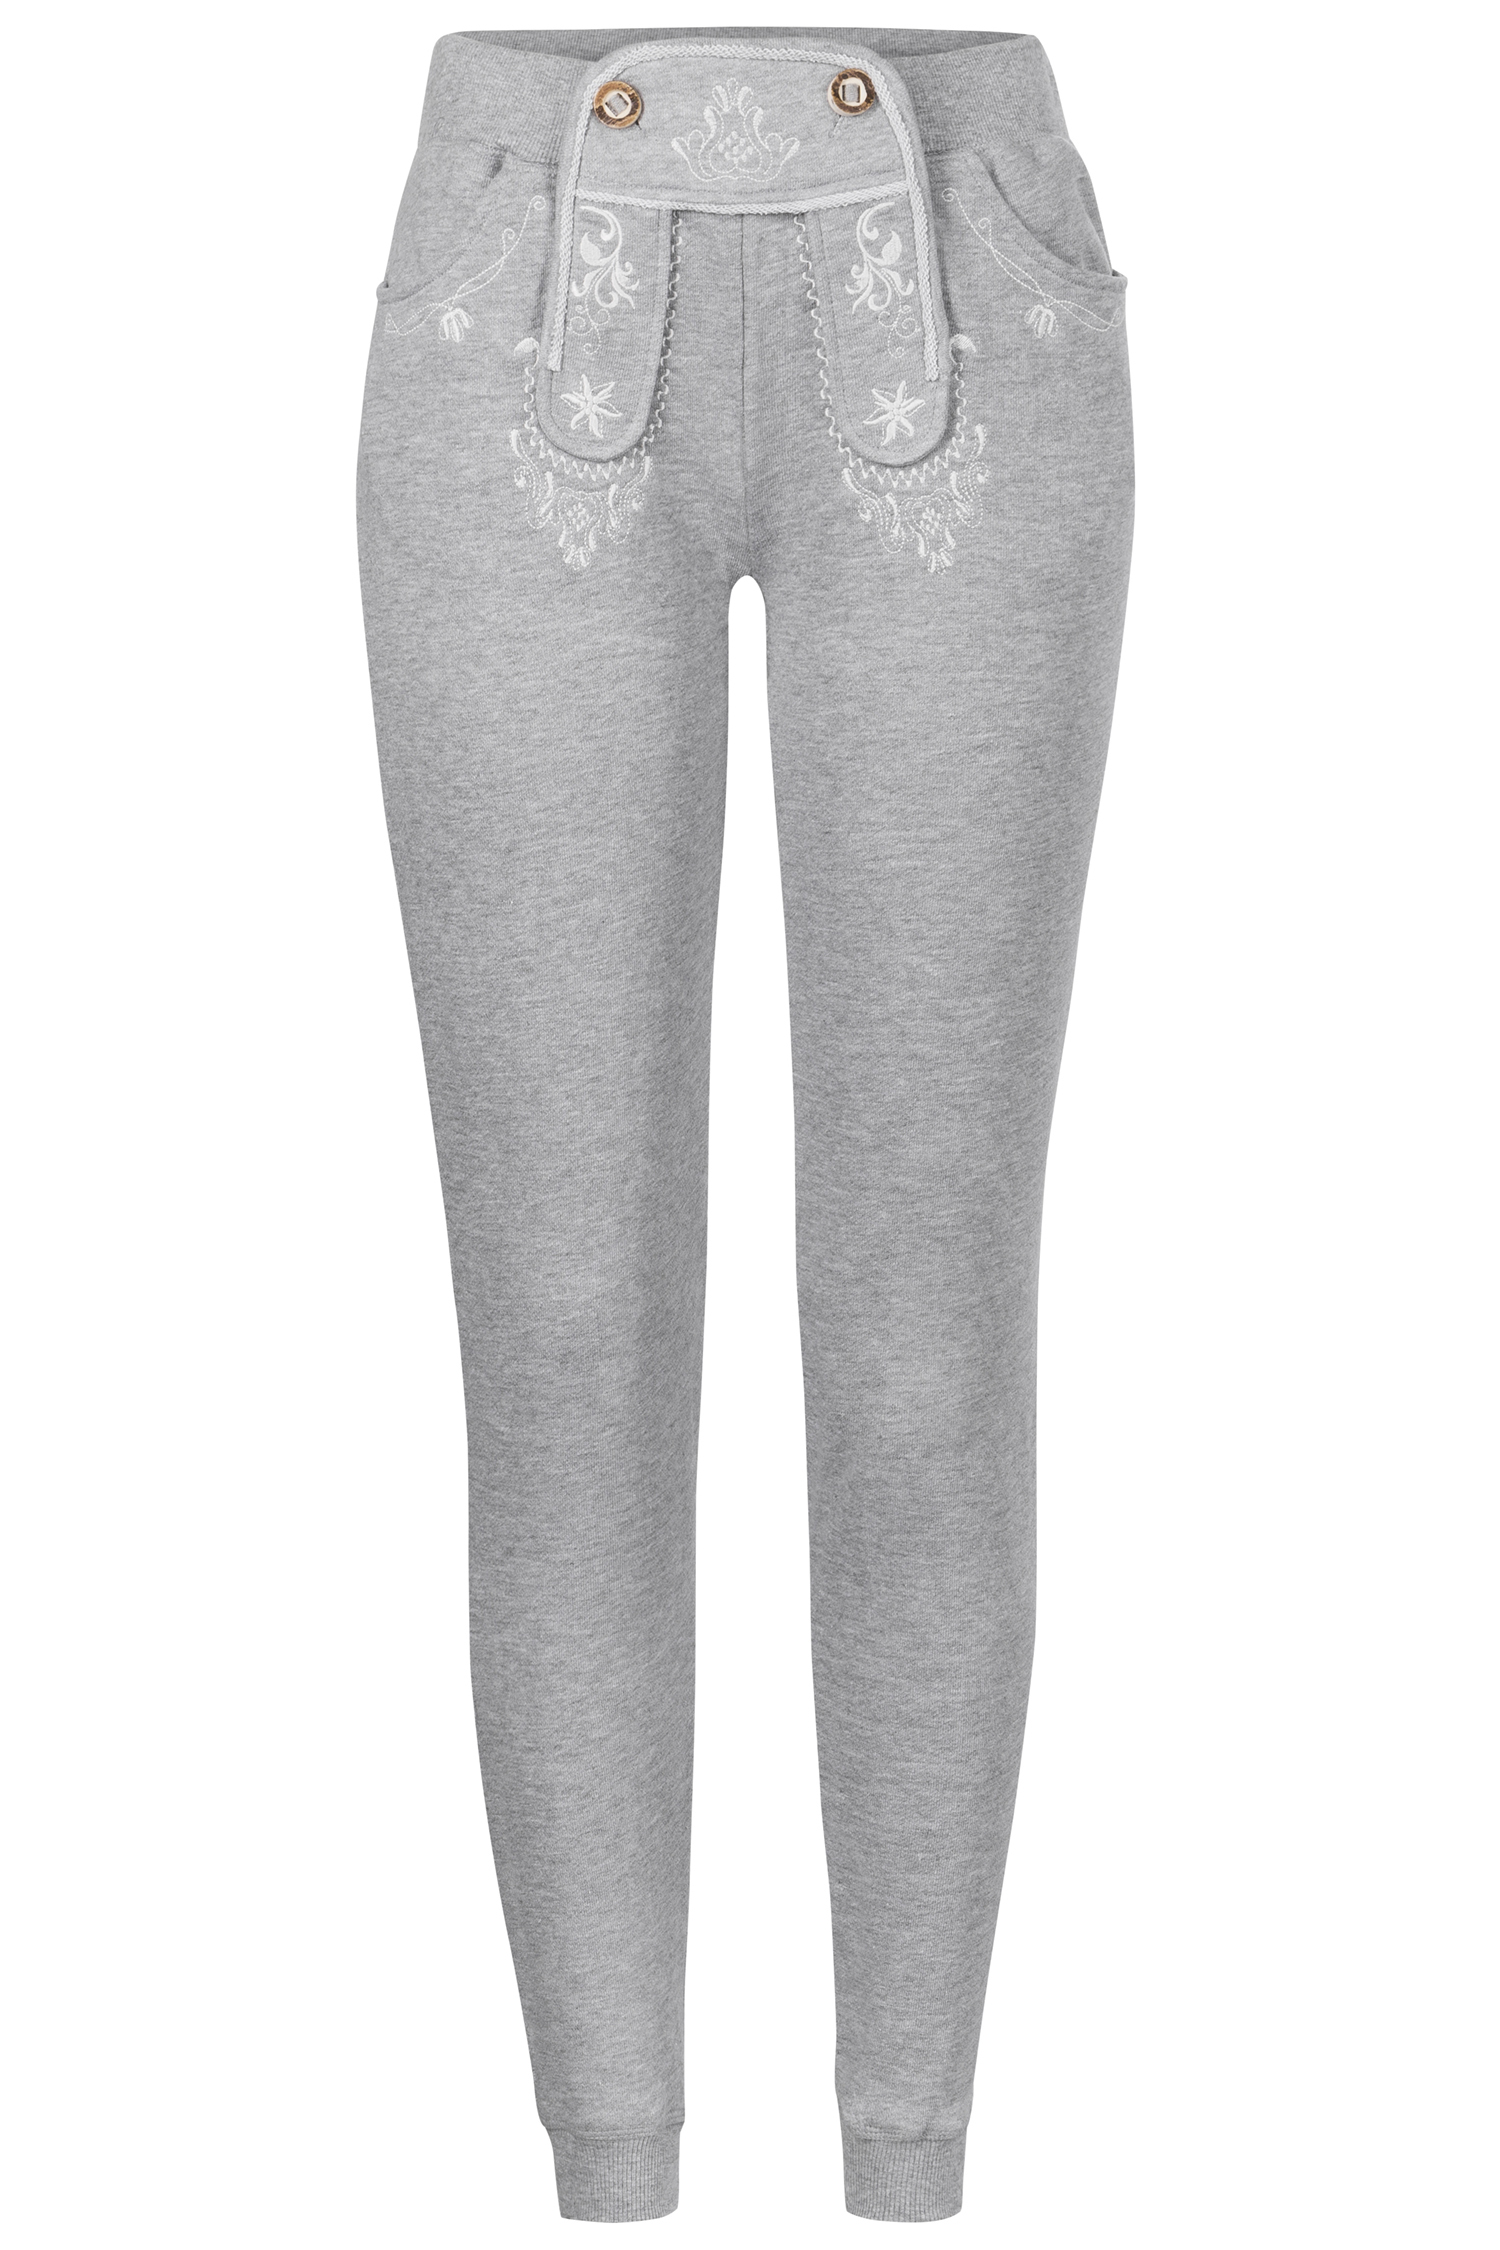 Trachtenjogger Shelly S | grau